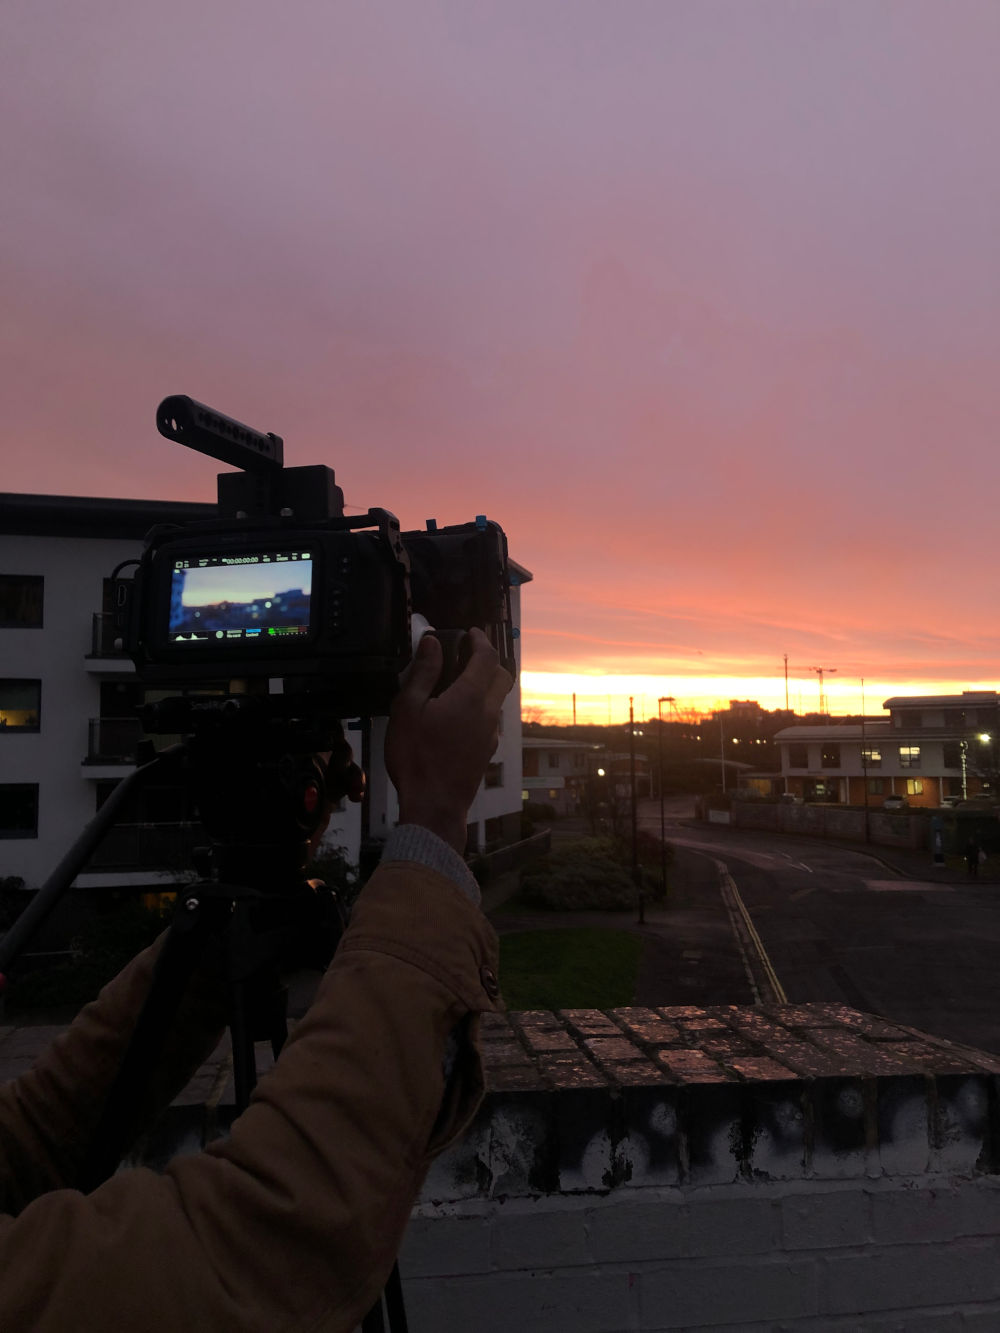 Behind the scenes image from Liam Calvert's Voyager. We see a sunrise shot on the Blackmagic Pocket Cinema Camera 4K